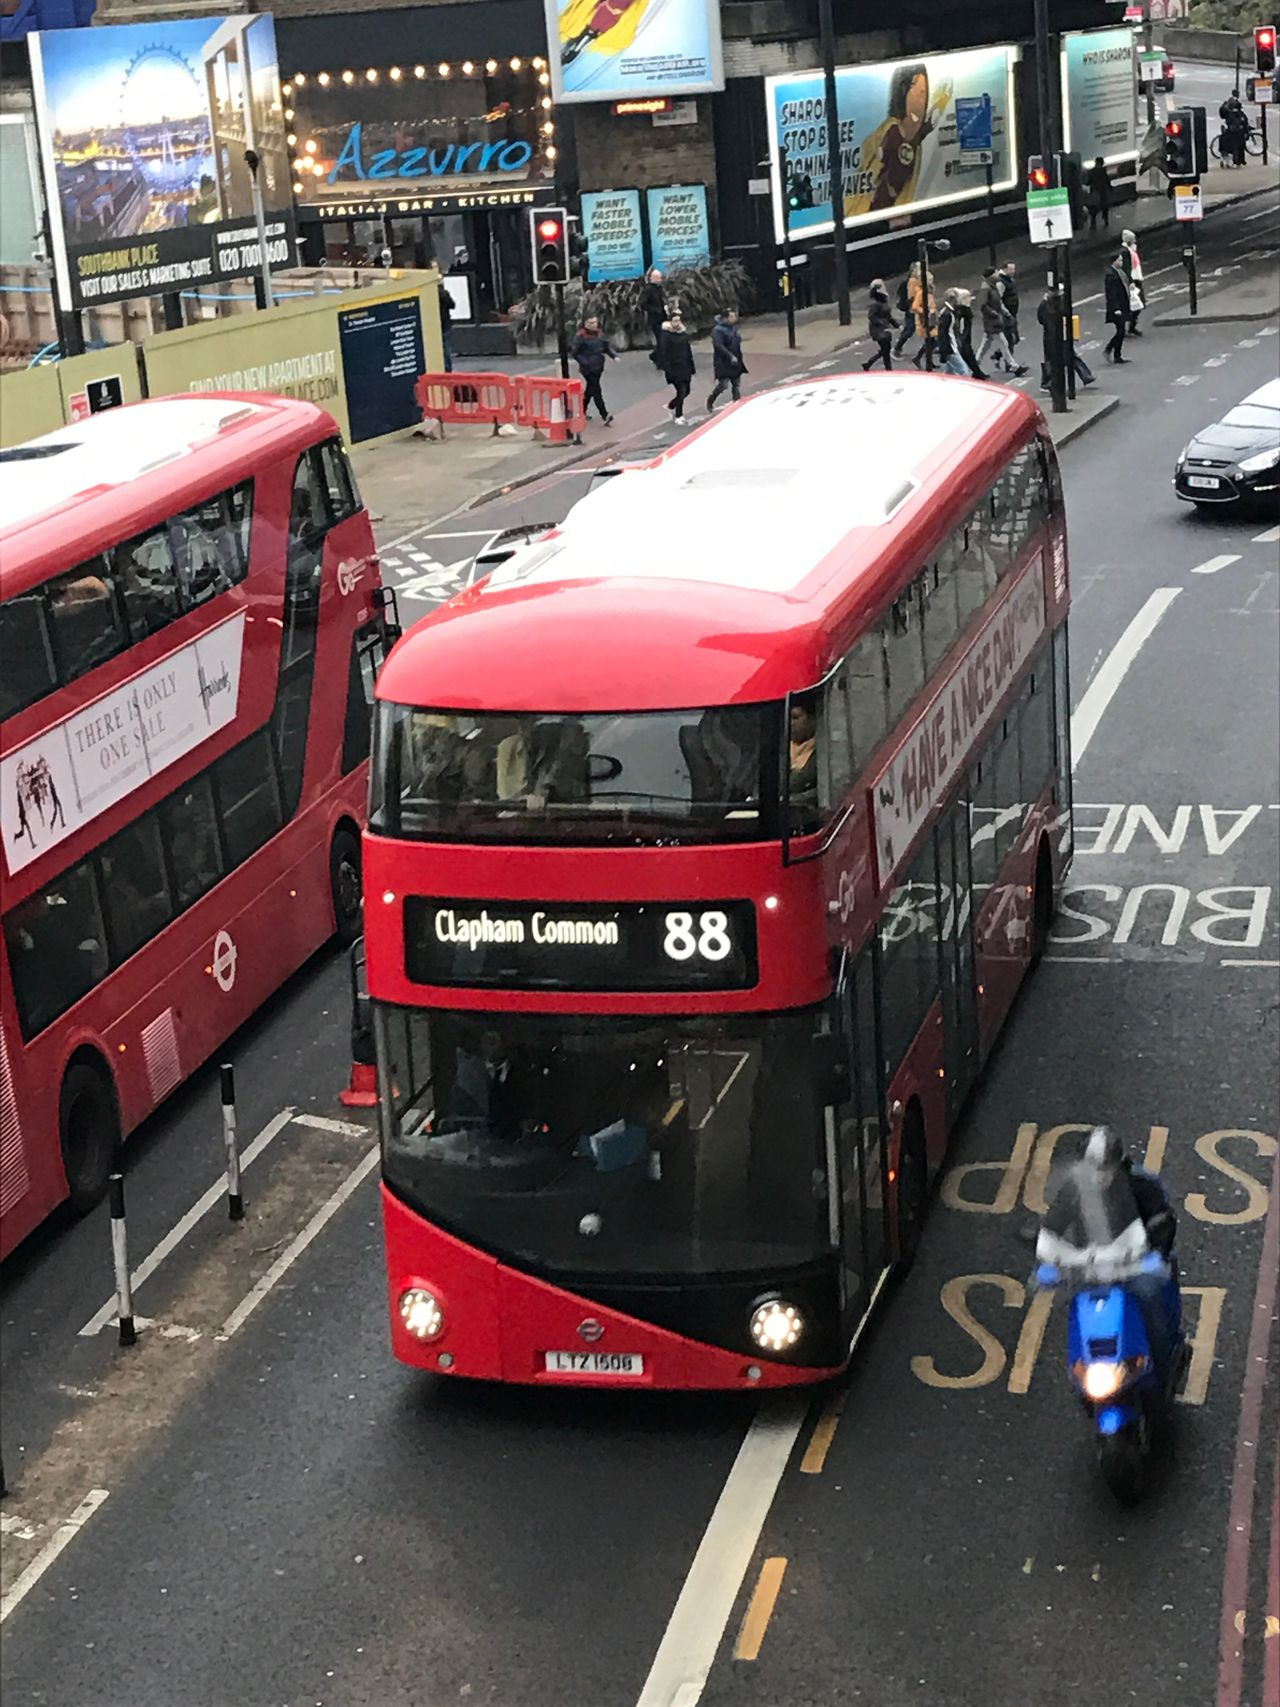 Buzzy Busy London Transportation City Travel Mode Of Transport Land Vehicle Public Transportation London Photography EyeEm Best Shots Art By Laziz British Style  Outdoors London Busses Double Decker London Bus Red Bus Biker